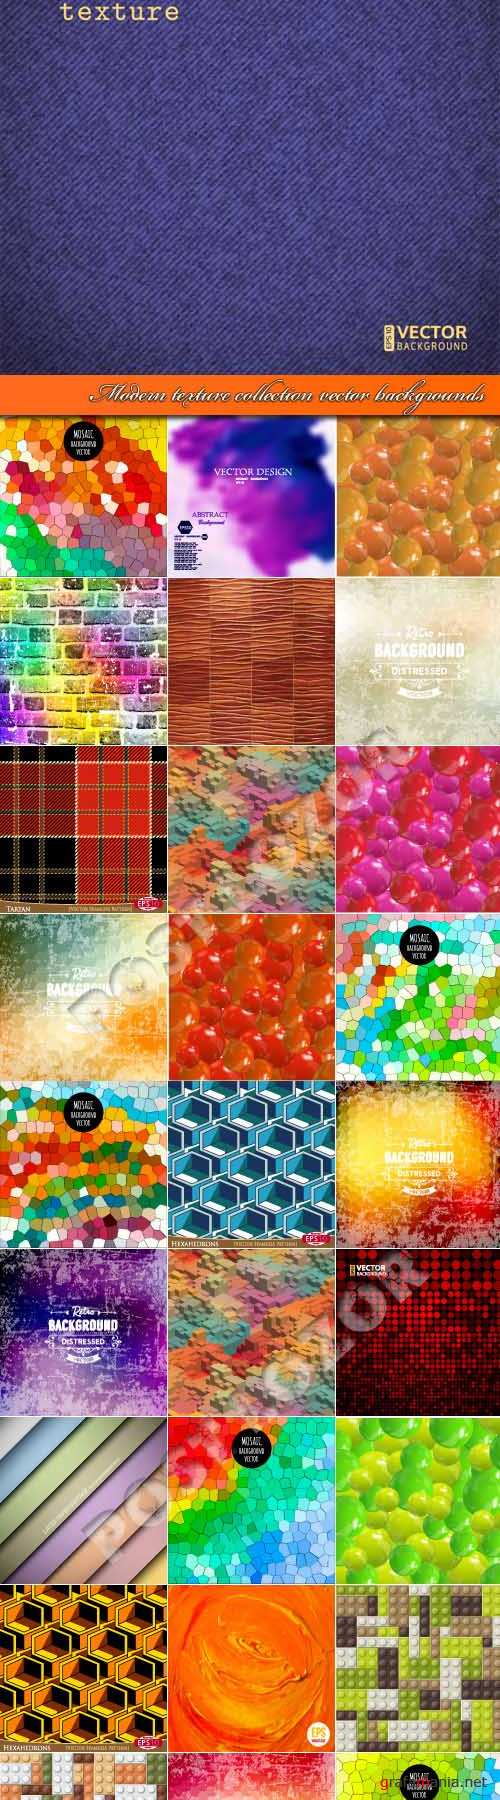 Современные текстуры | Modern texture collection vector backgrounds